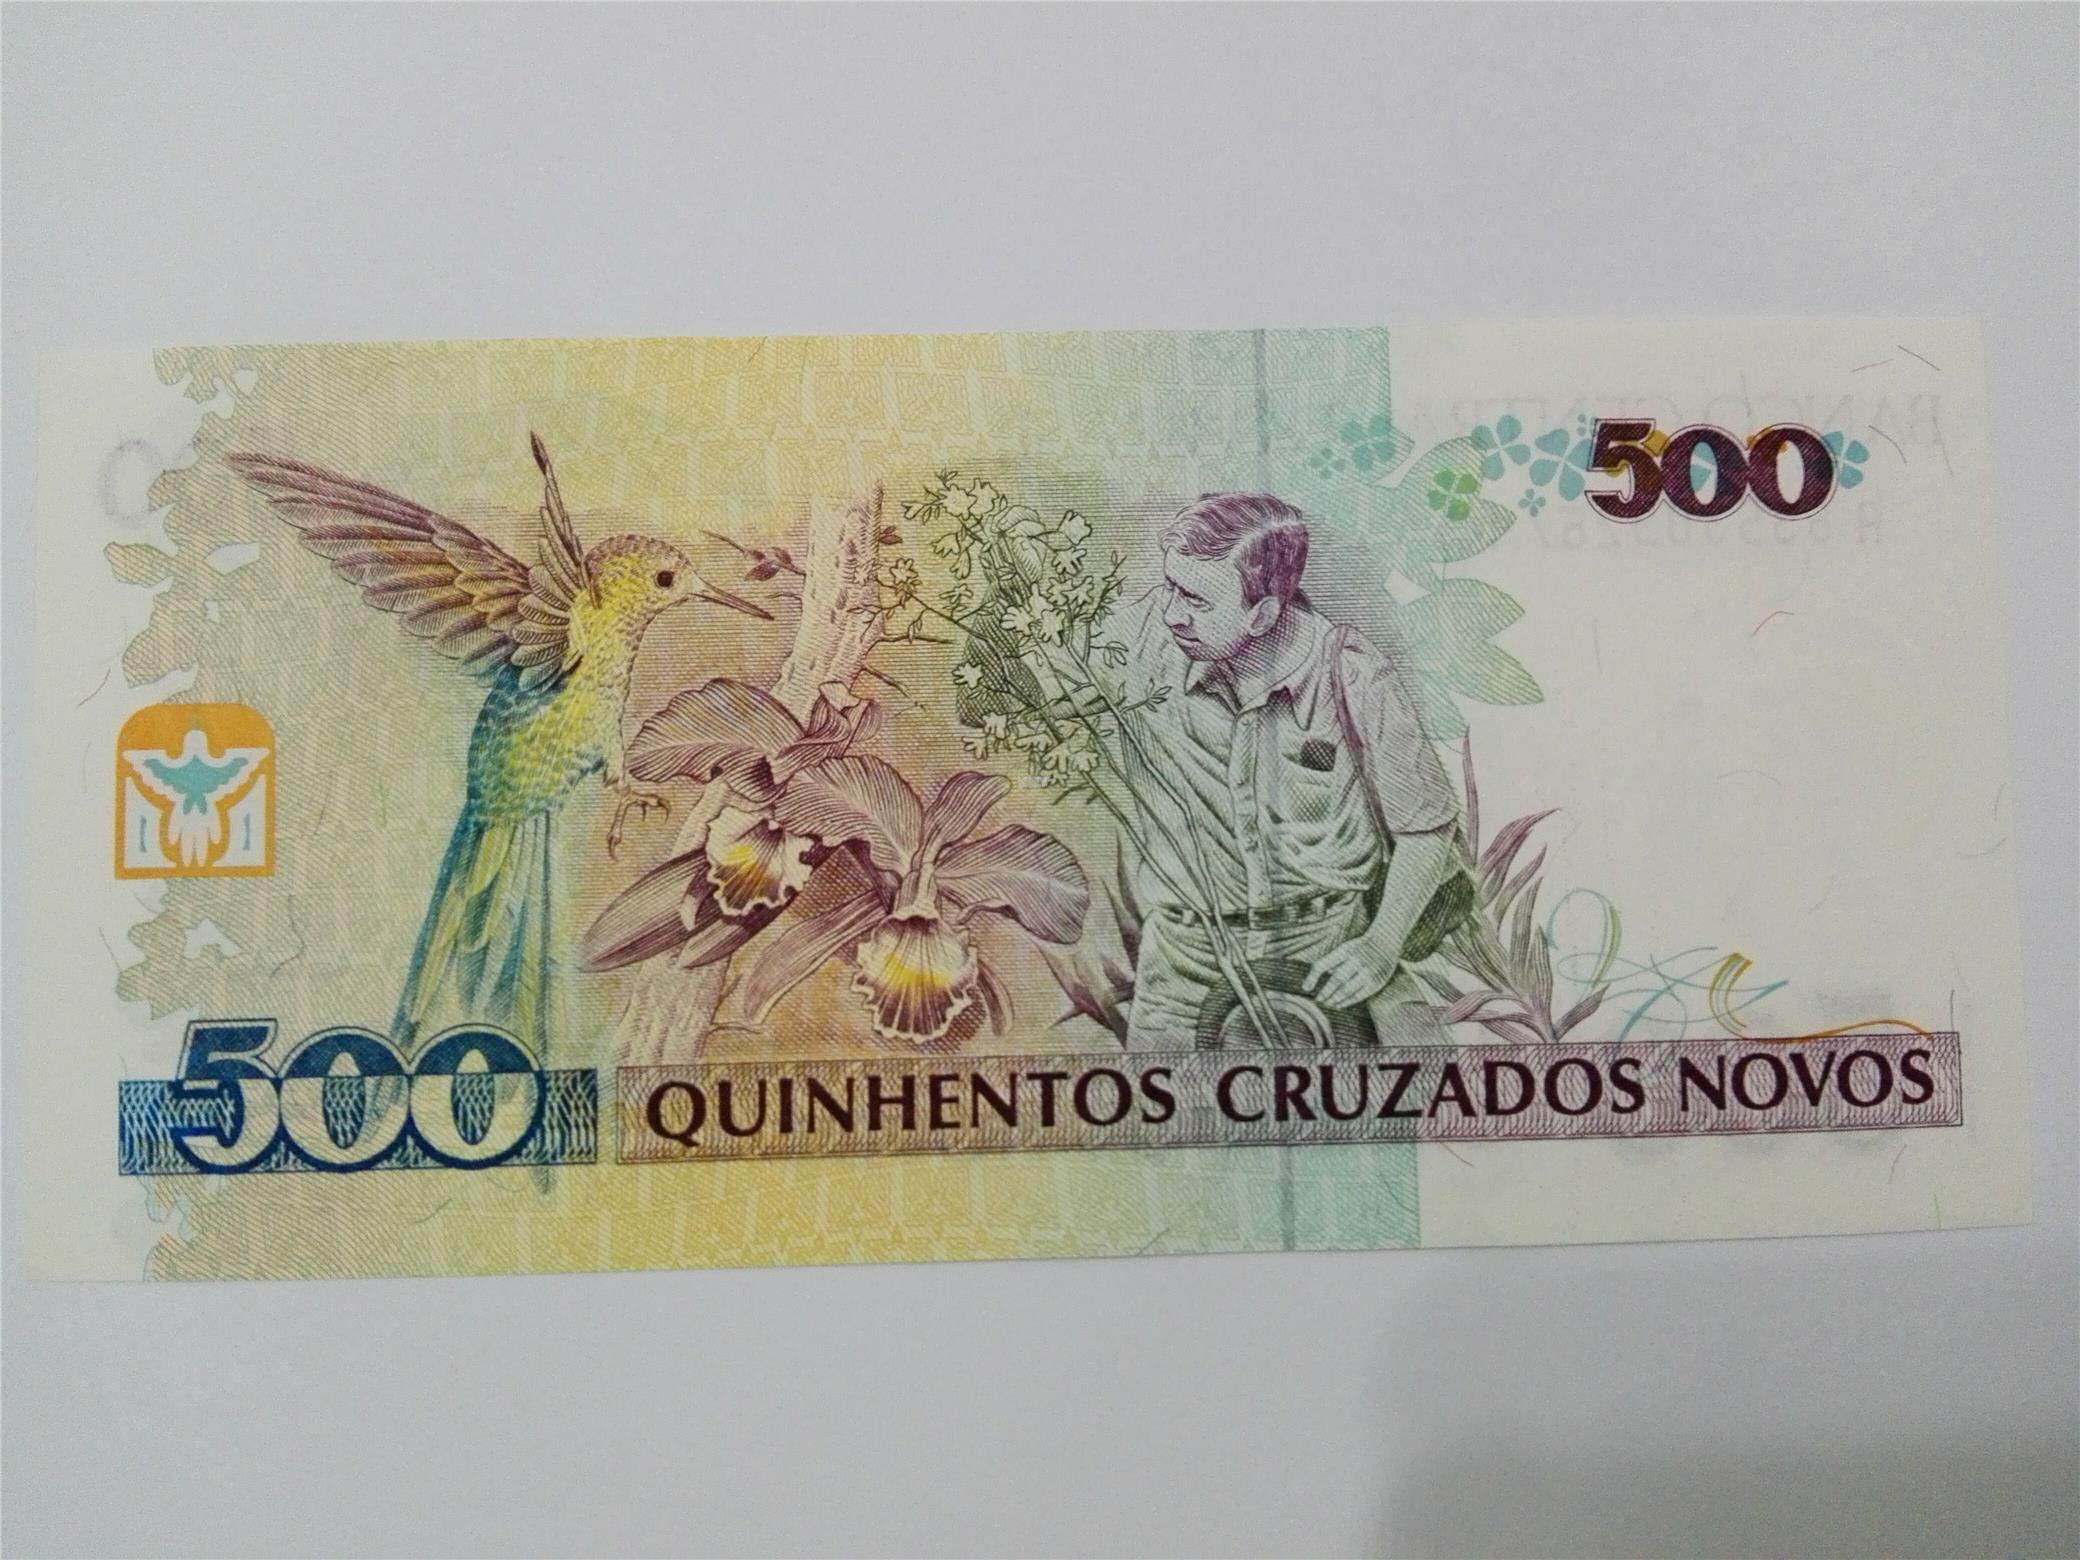 BRAZIL, 500 Cruzeiros Bank Note